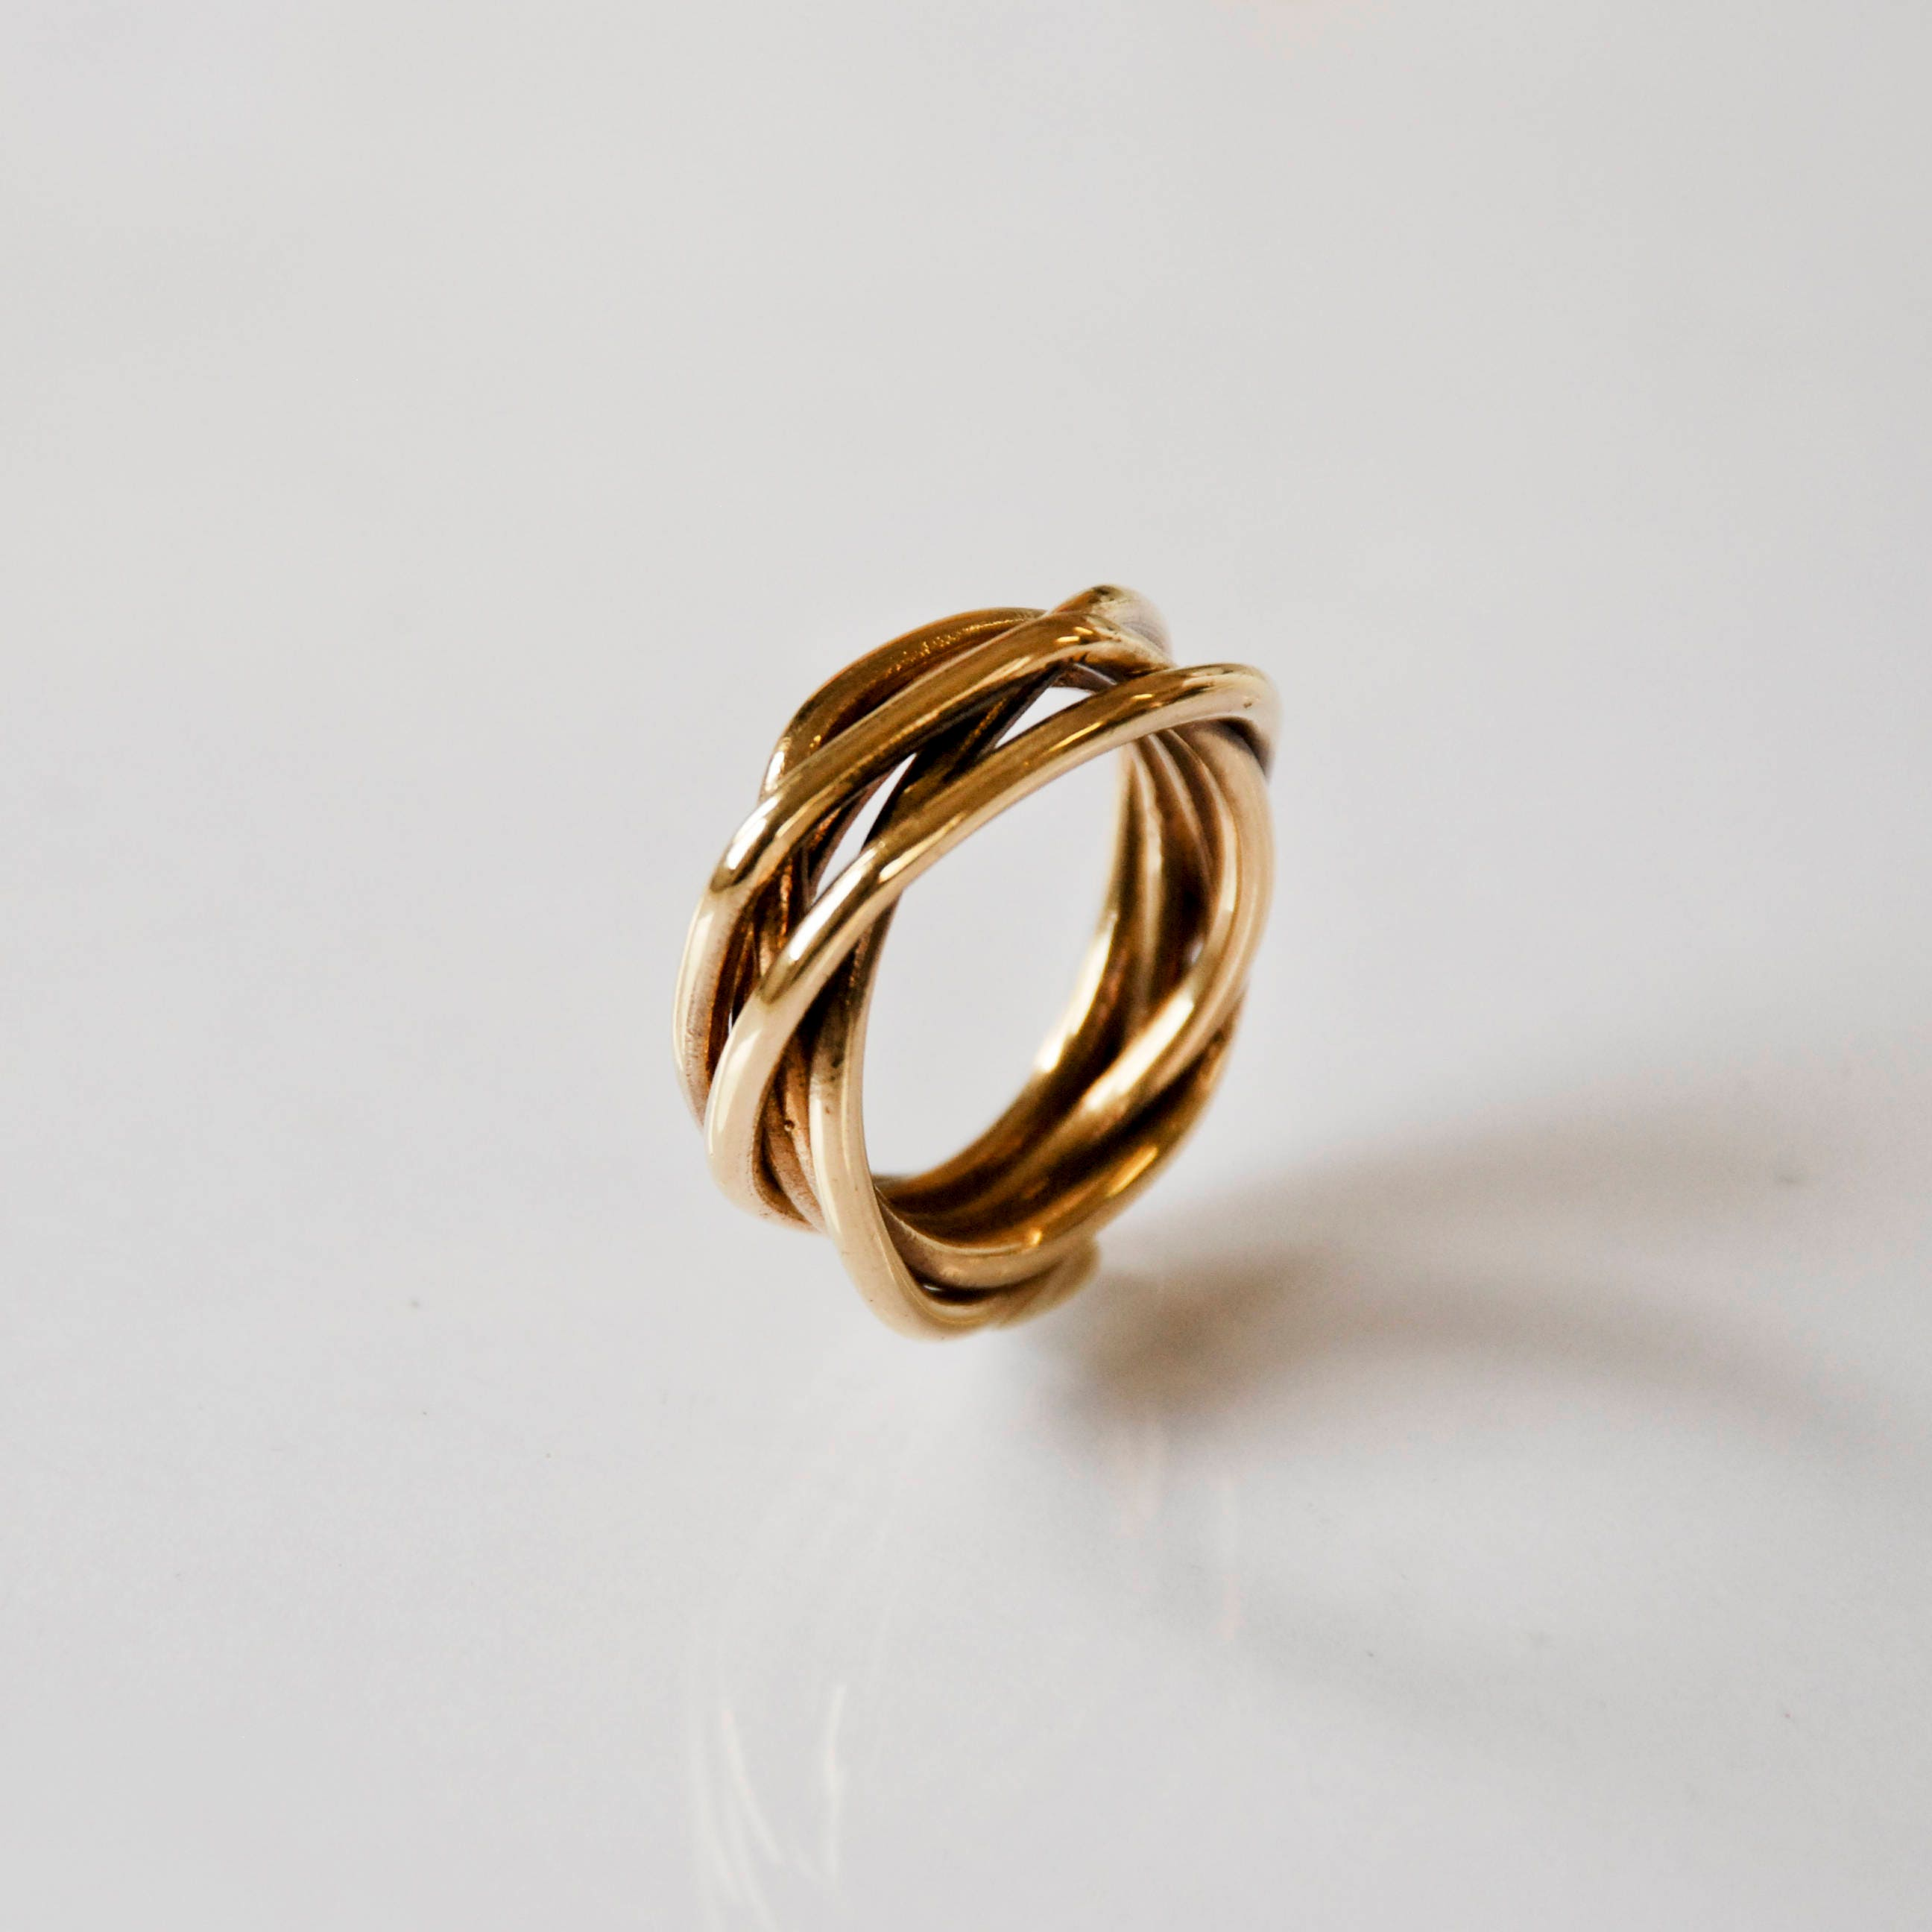 jewellry ring gold s lovely shop website men of mens wanelo handmade on new rings